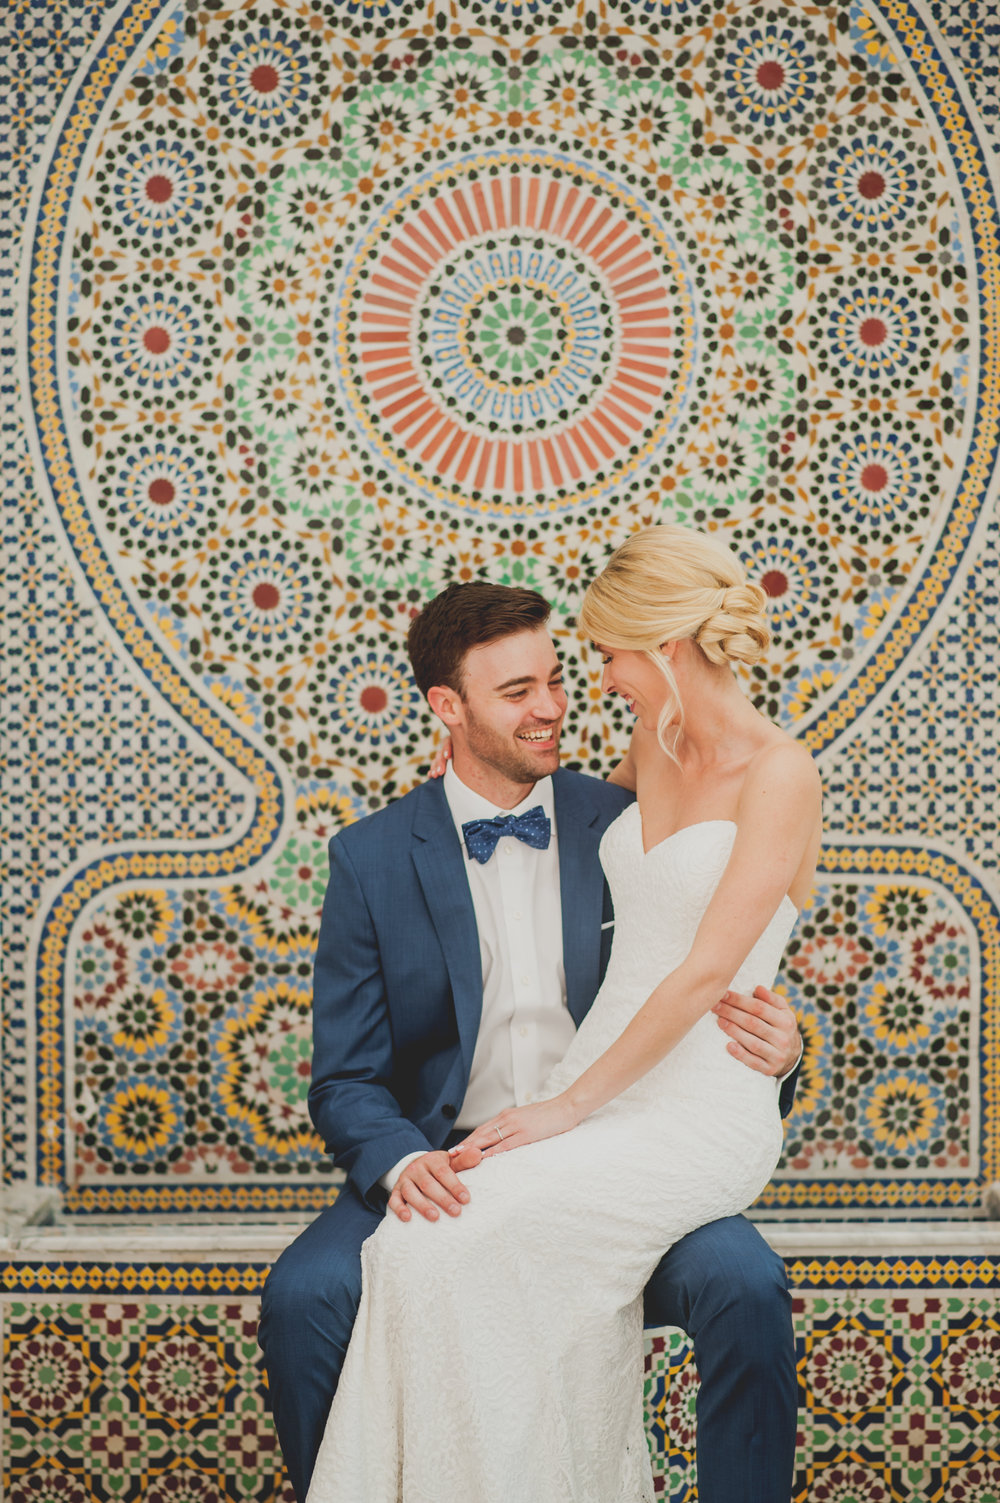 Selina Whittaker Photography - Toronto-based photographer capturing joy and genuine moments with heart & soul.Email: selina@selinawhittakerphotography.comContact: Selina WhittakerPhone: (416) 580-1603Website: www.selinawhittakerphotography.cominstagram ~ facebook